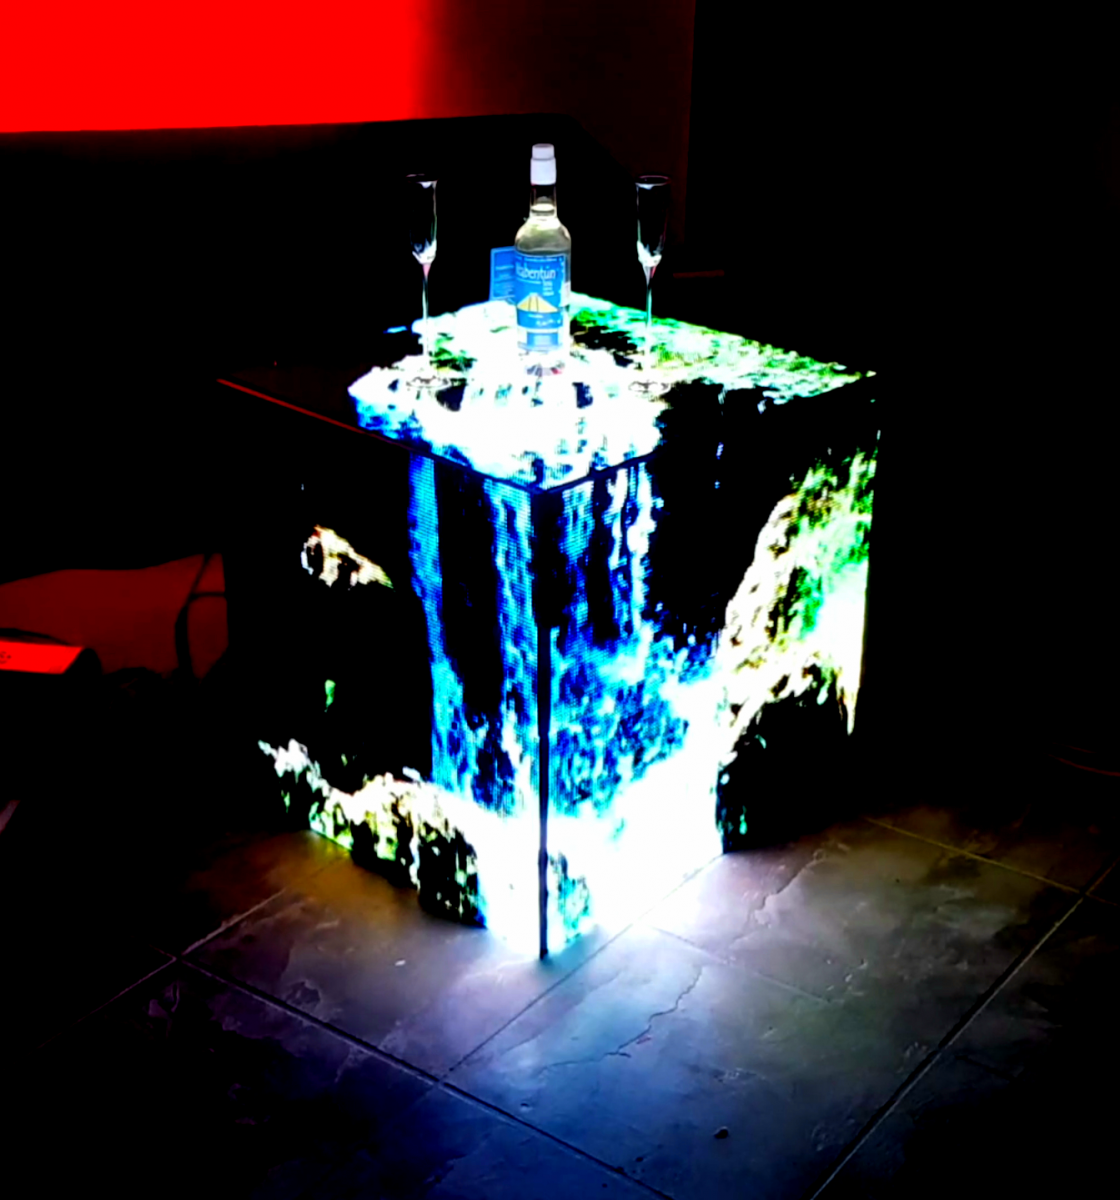 128 x 128 Resolution, 3D  end table style